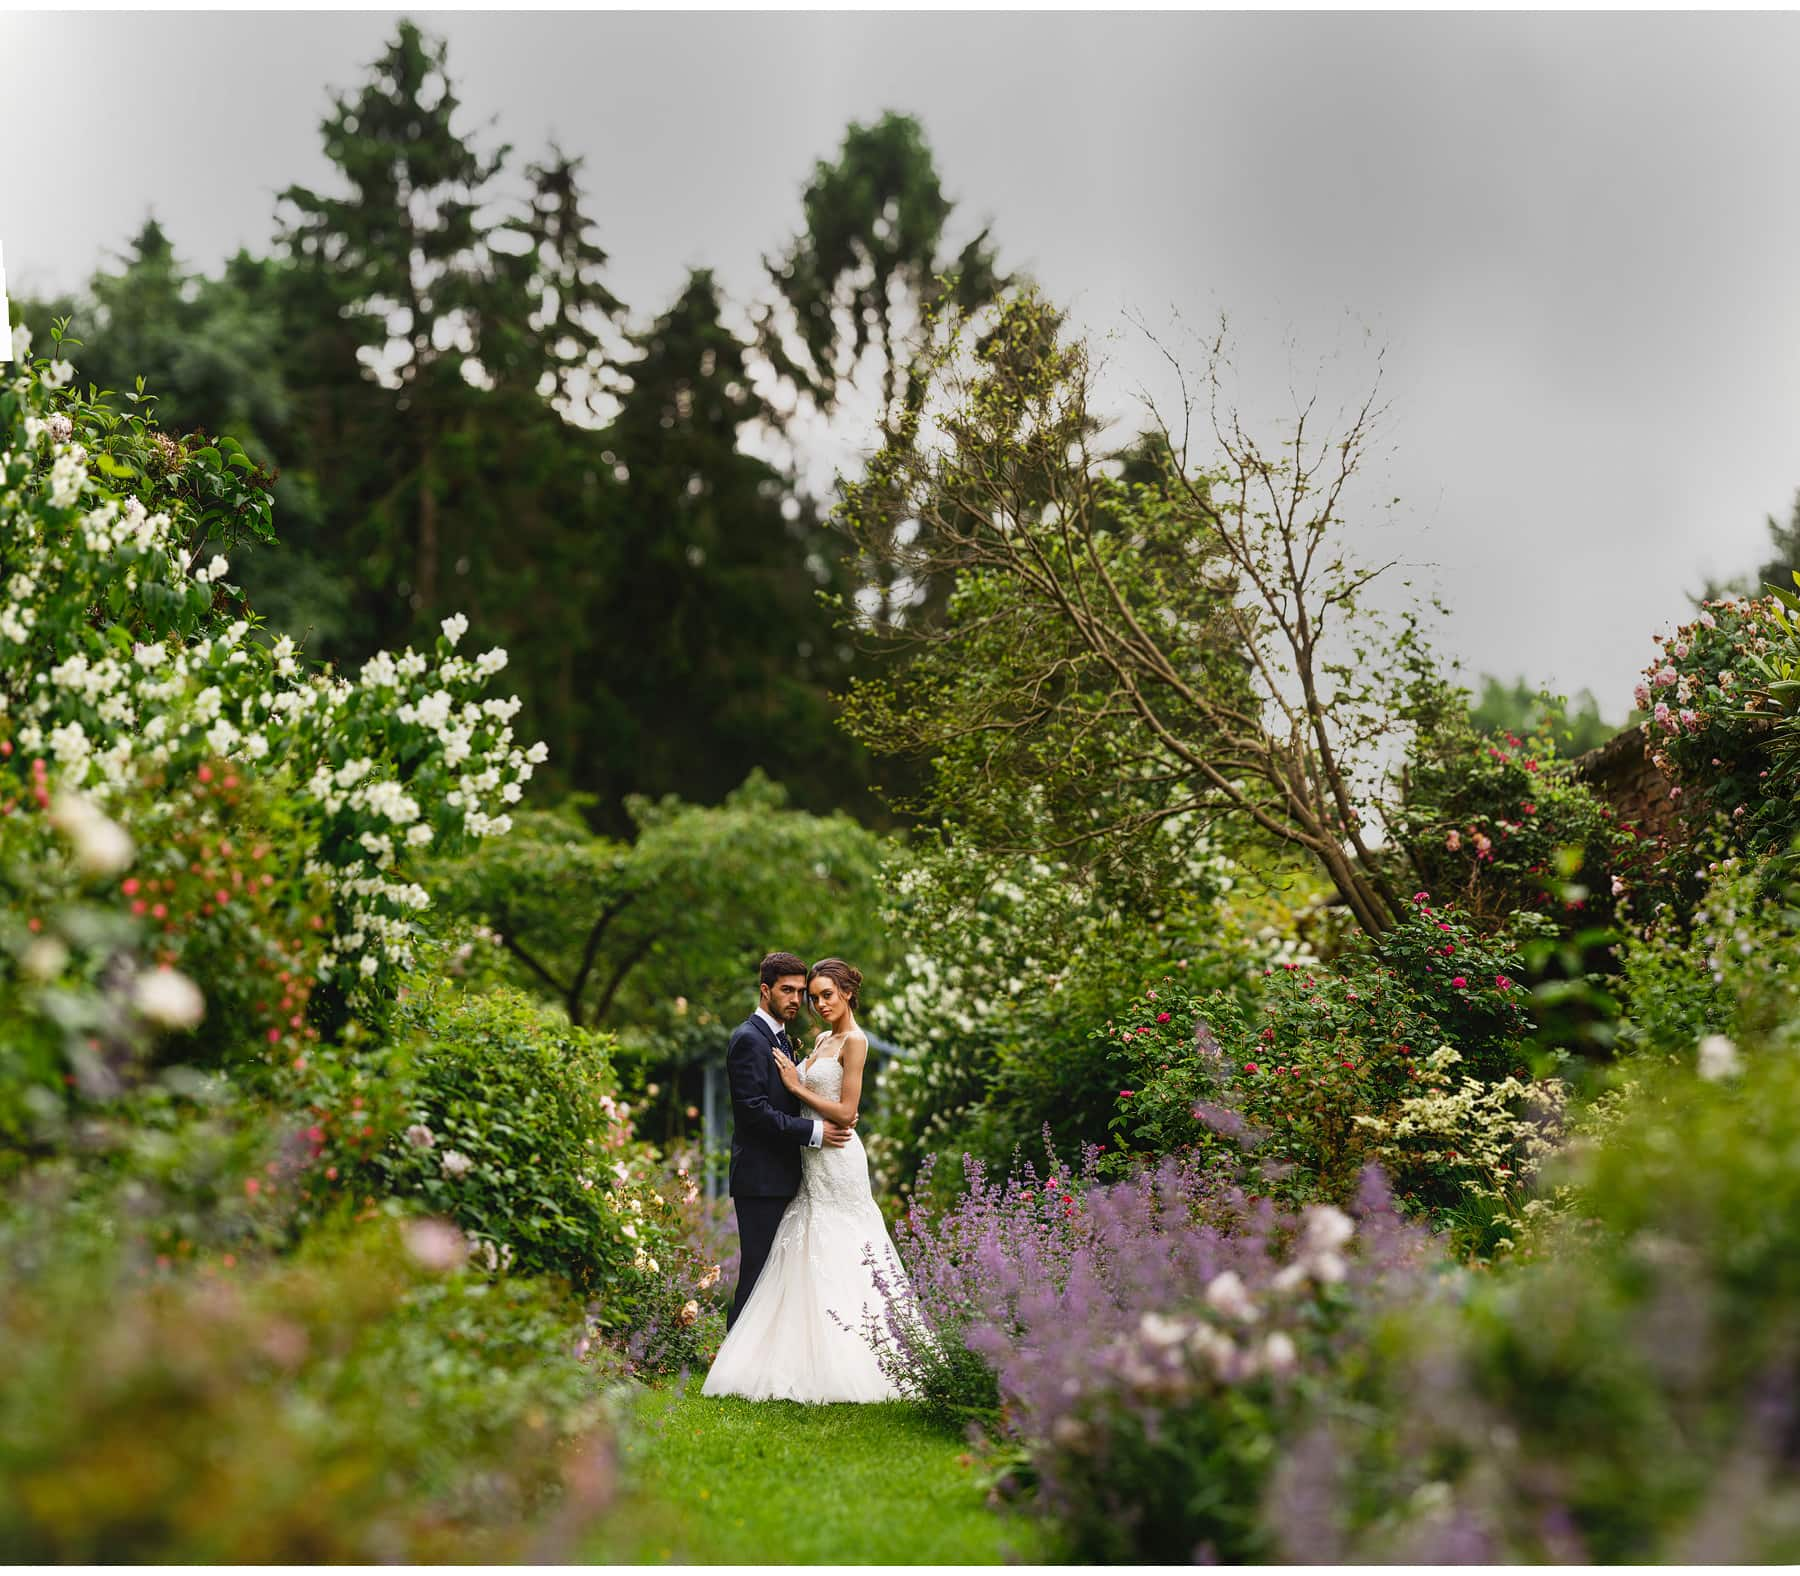 the bride and groom in the summer gardens